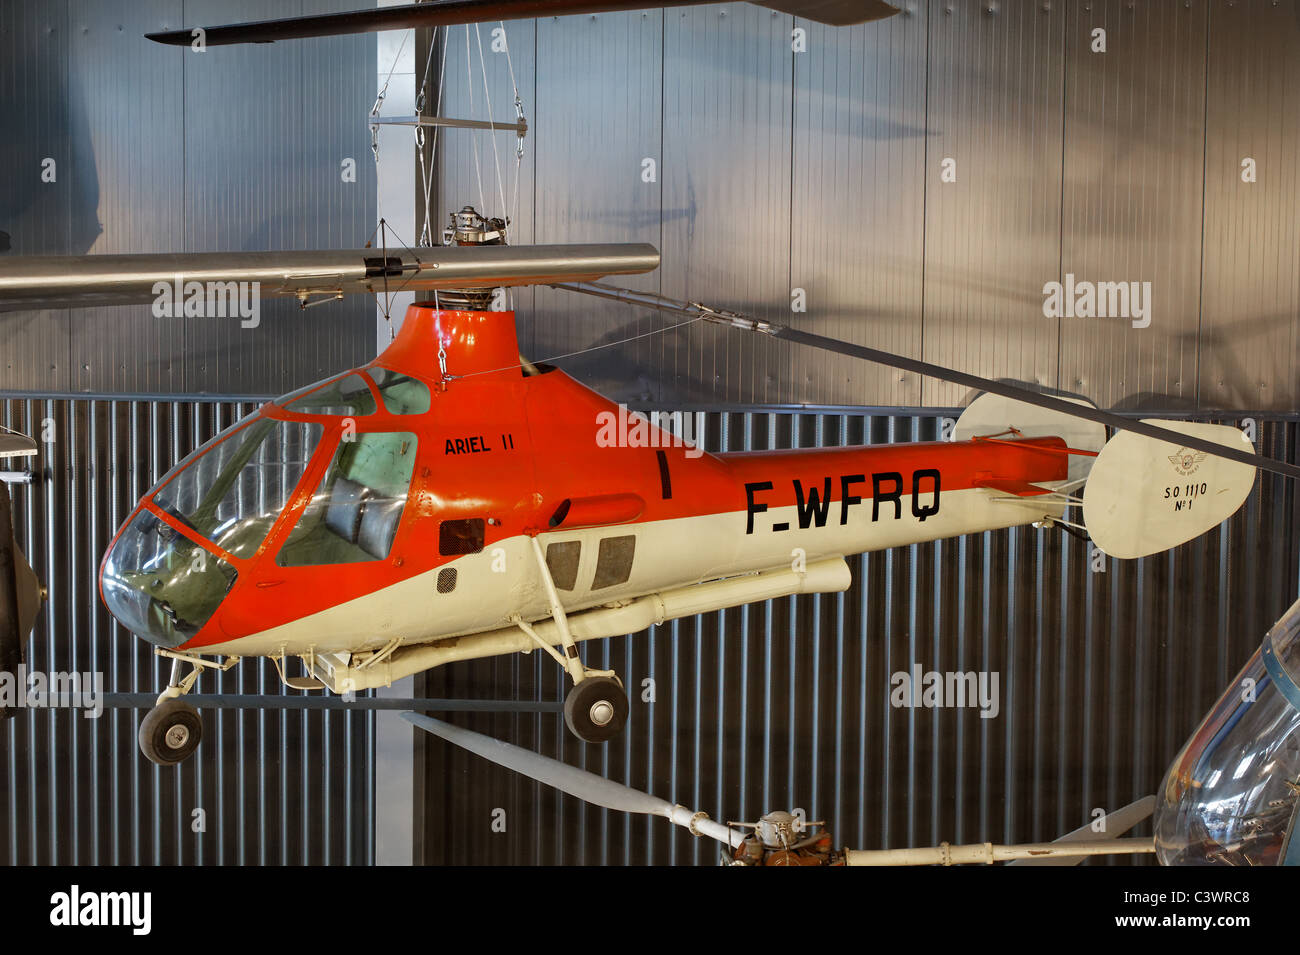 SO.1120 Ariel II, French Air Force helicopter, air and Space Museum (le Bourget), France - Stock Image